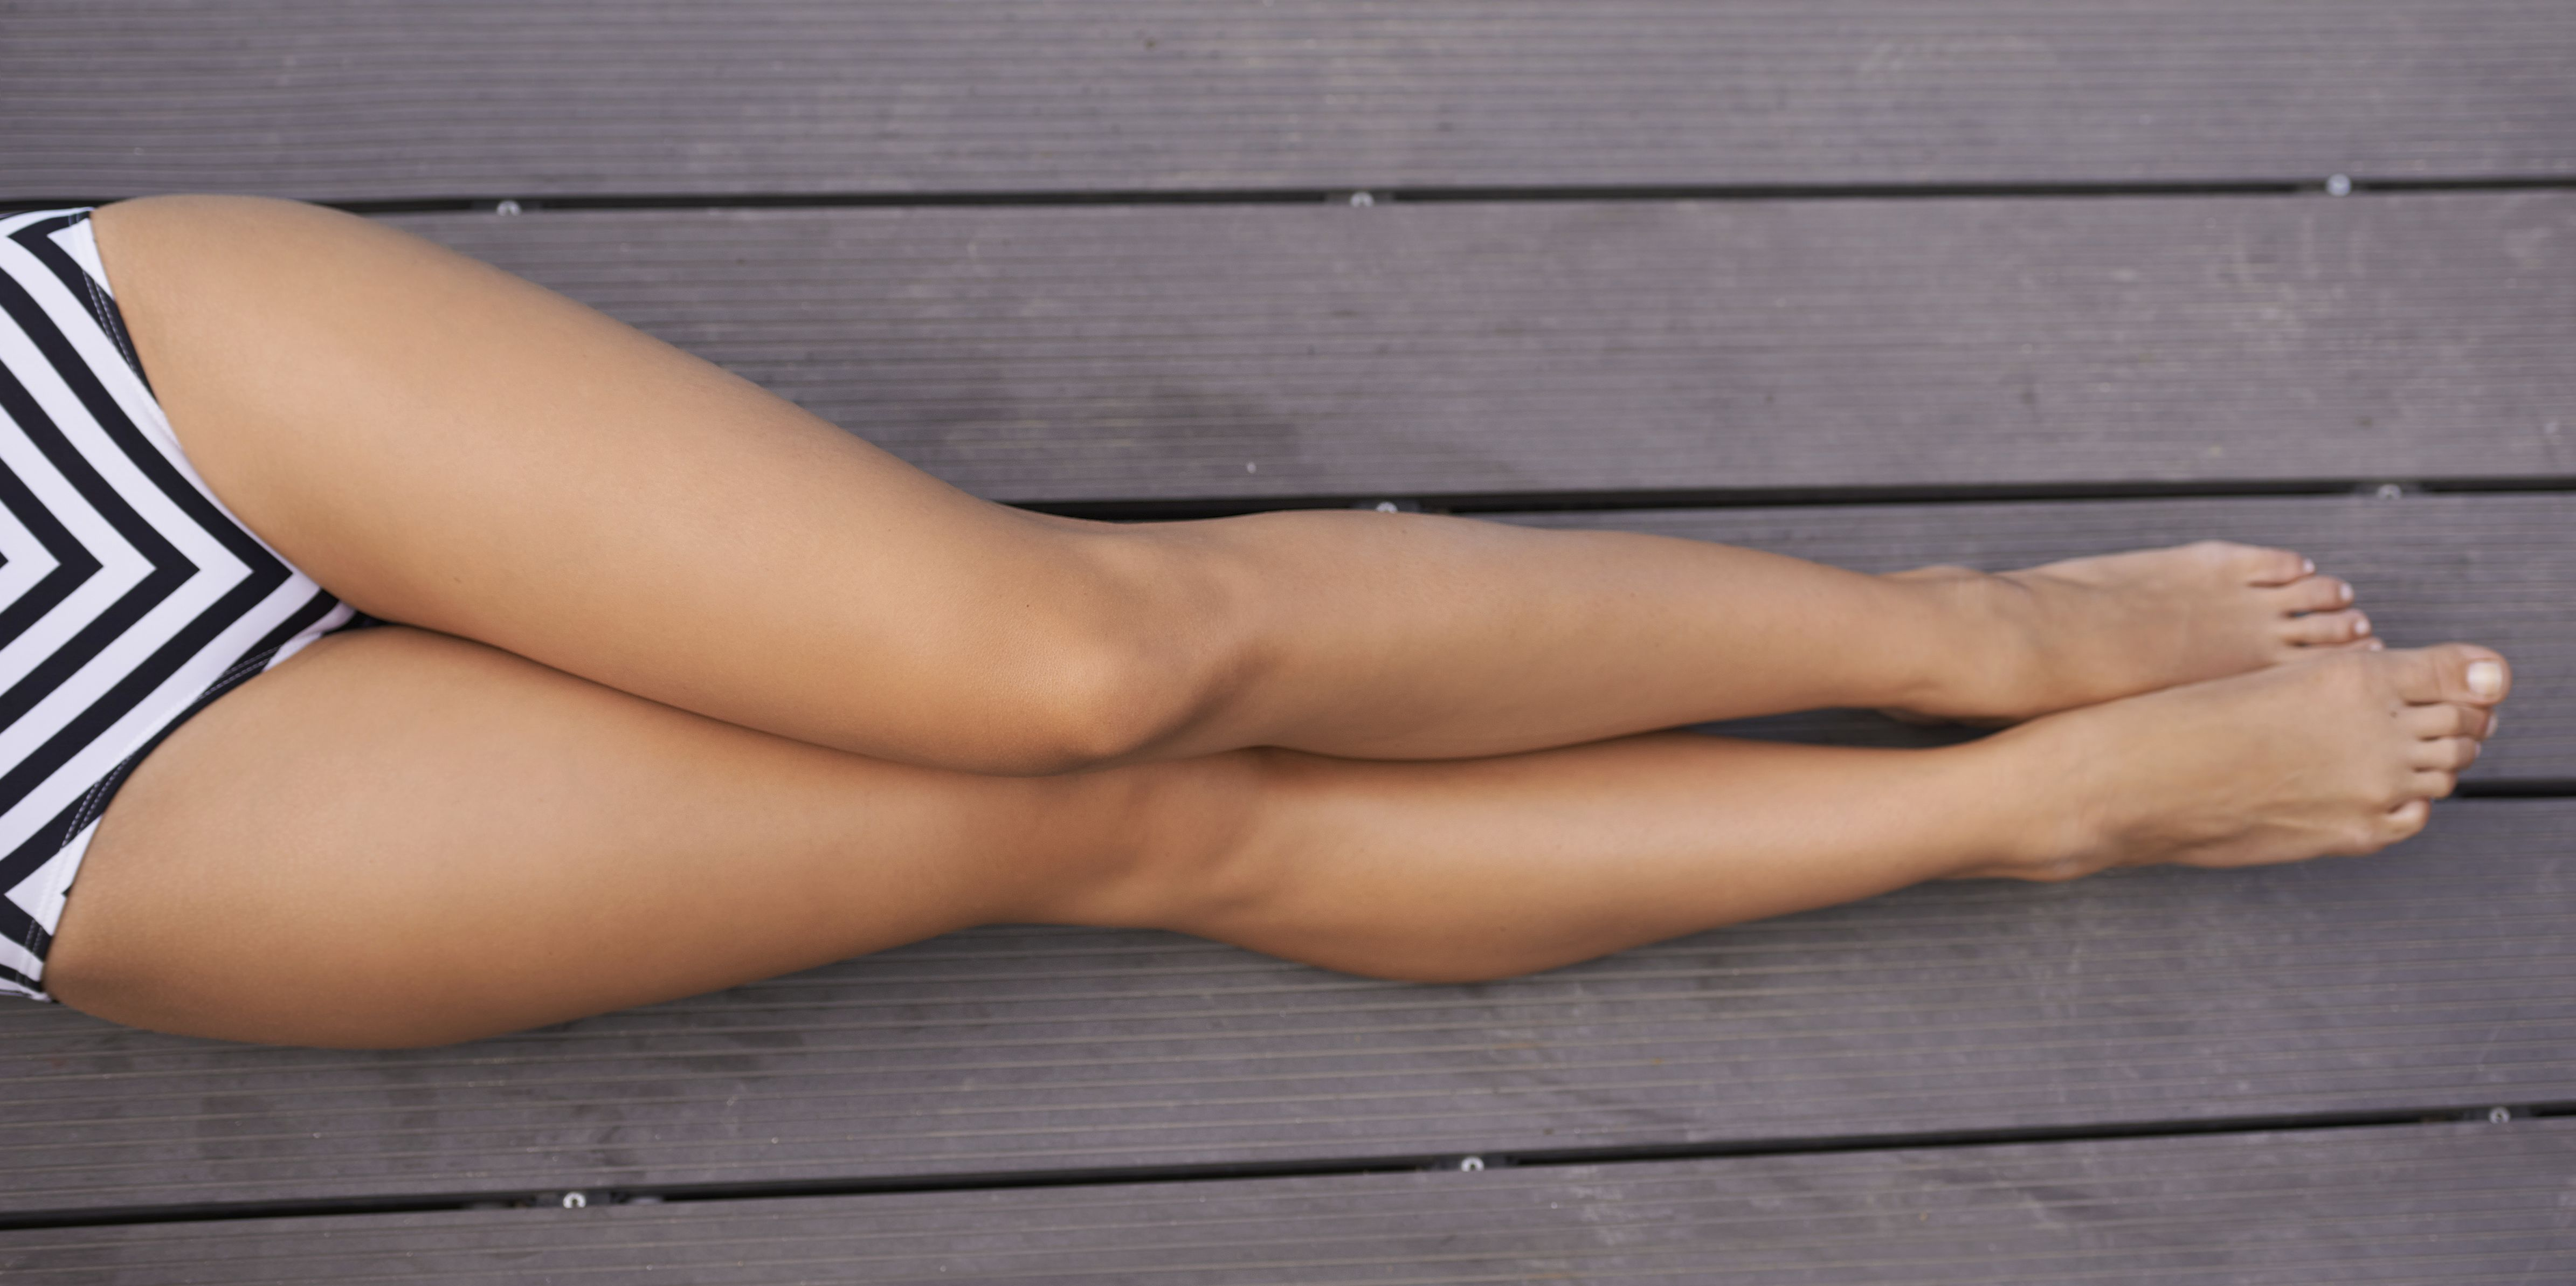 5 common tanning struggles solved